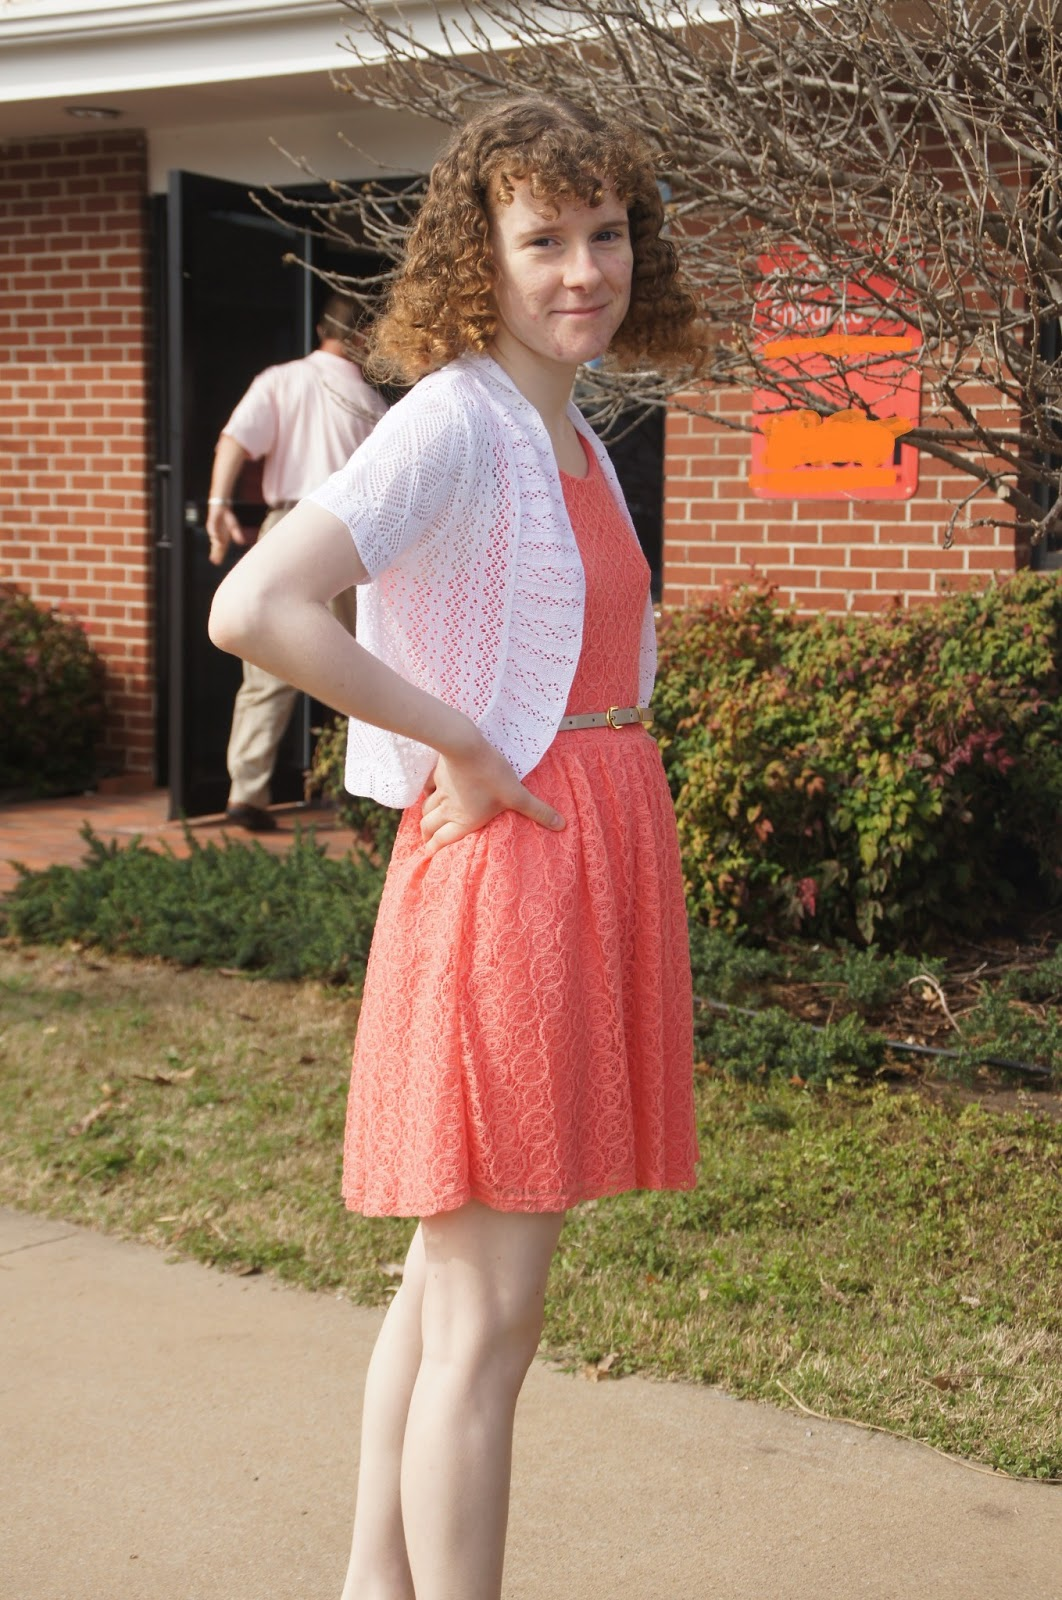 imgsrc siberian mouse Here's me in my New Easter dress. I usually I'm not a clothes/dress  person(I have a tomboyish dress style), but I really like this one.